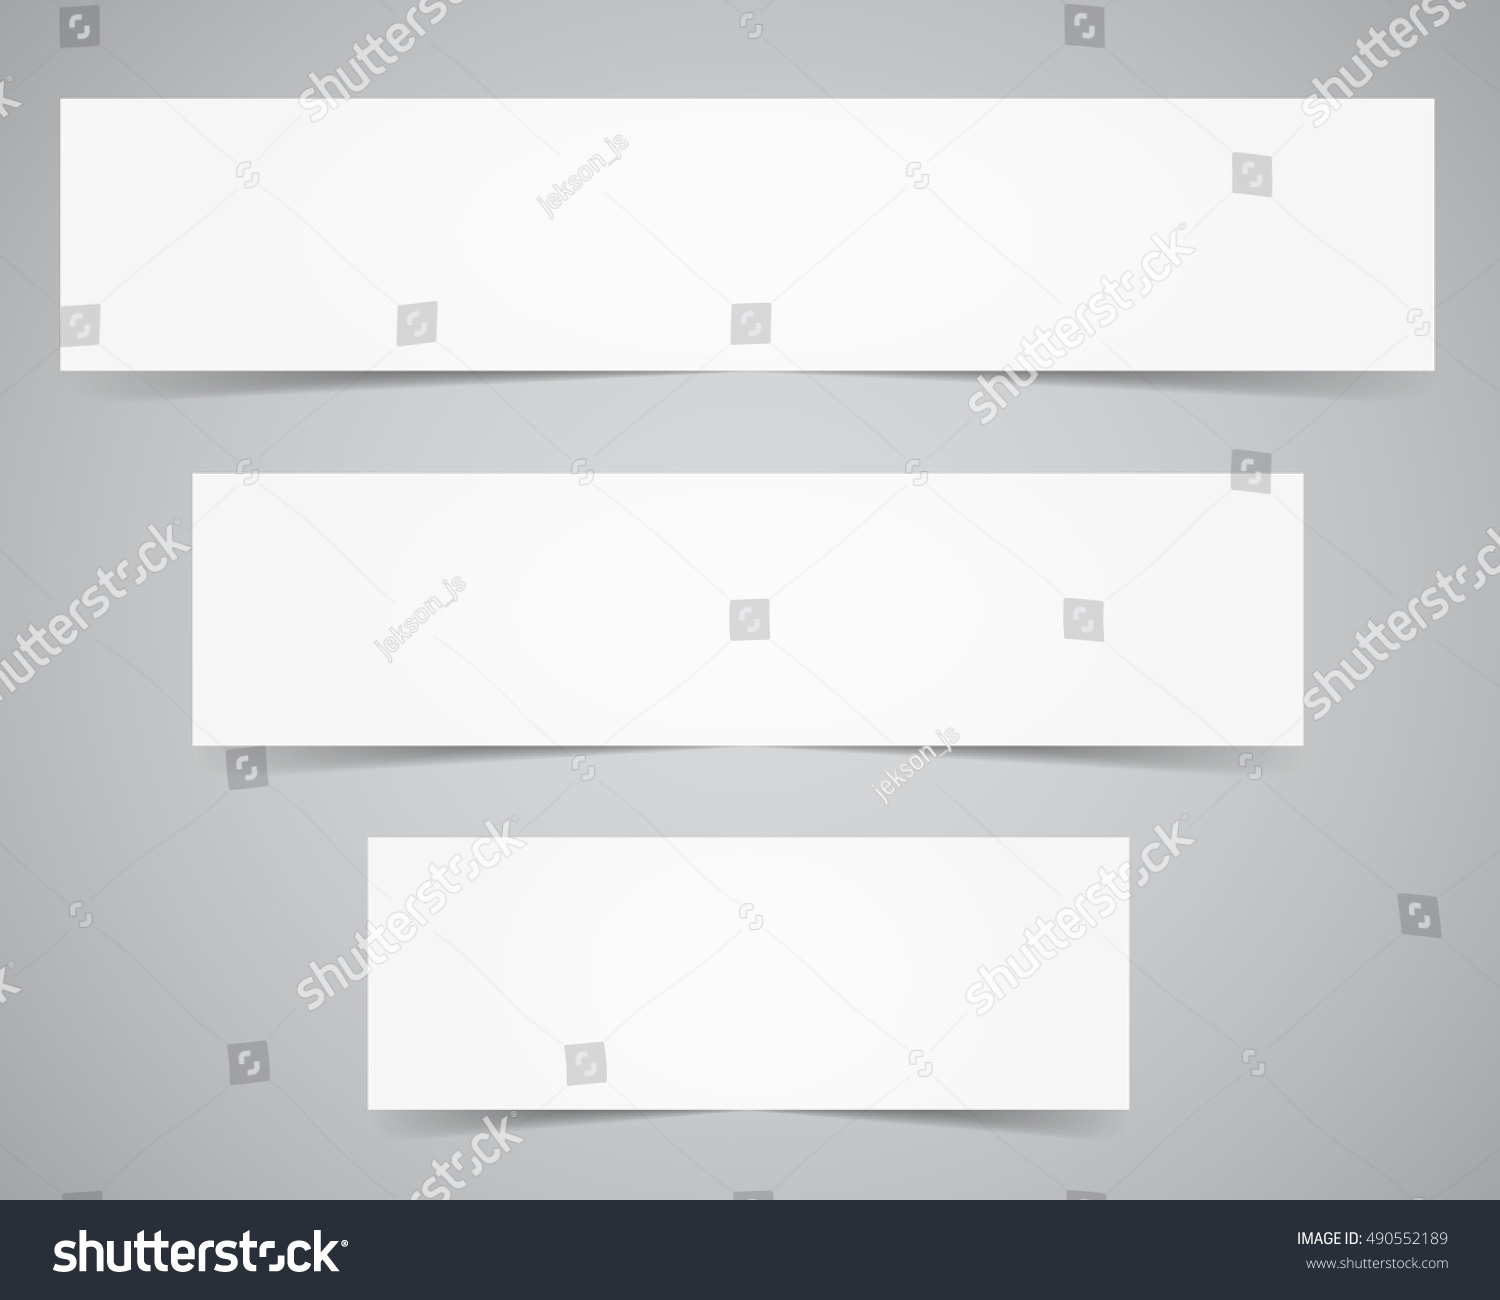 Corporate identity banners template branding letterhead stock corporate identity banners template branding letterhead business identity kit paper edition spiritdancerdesigns Image collections